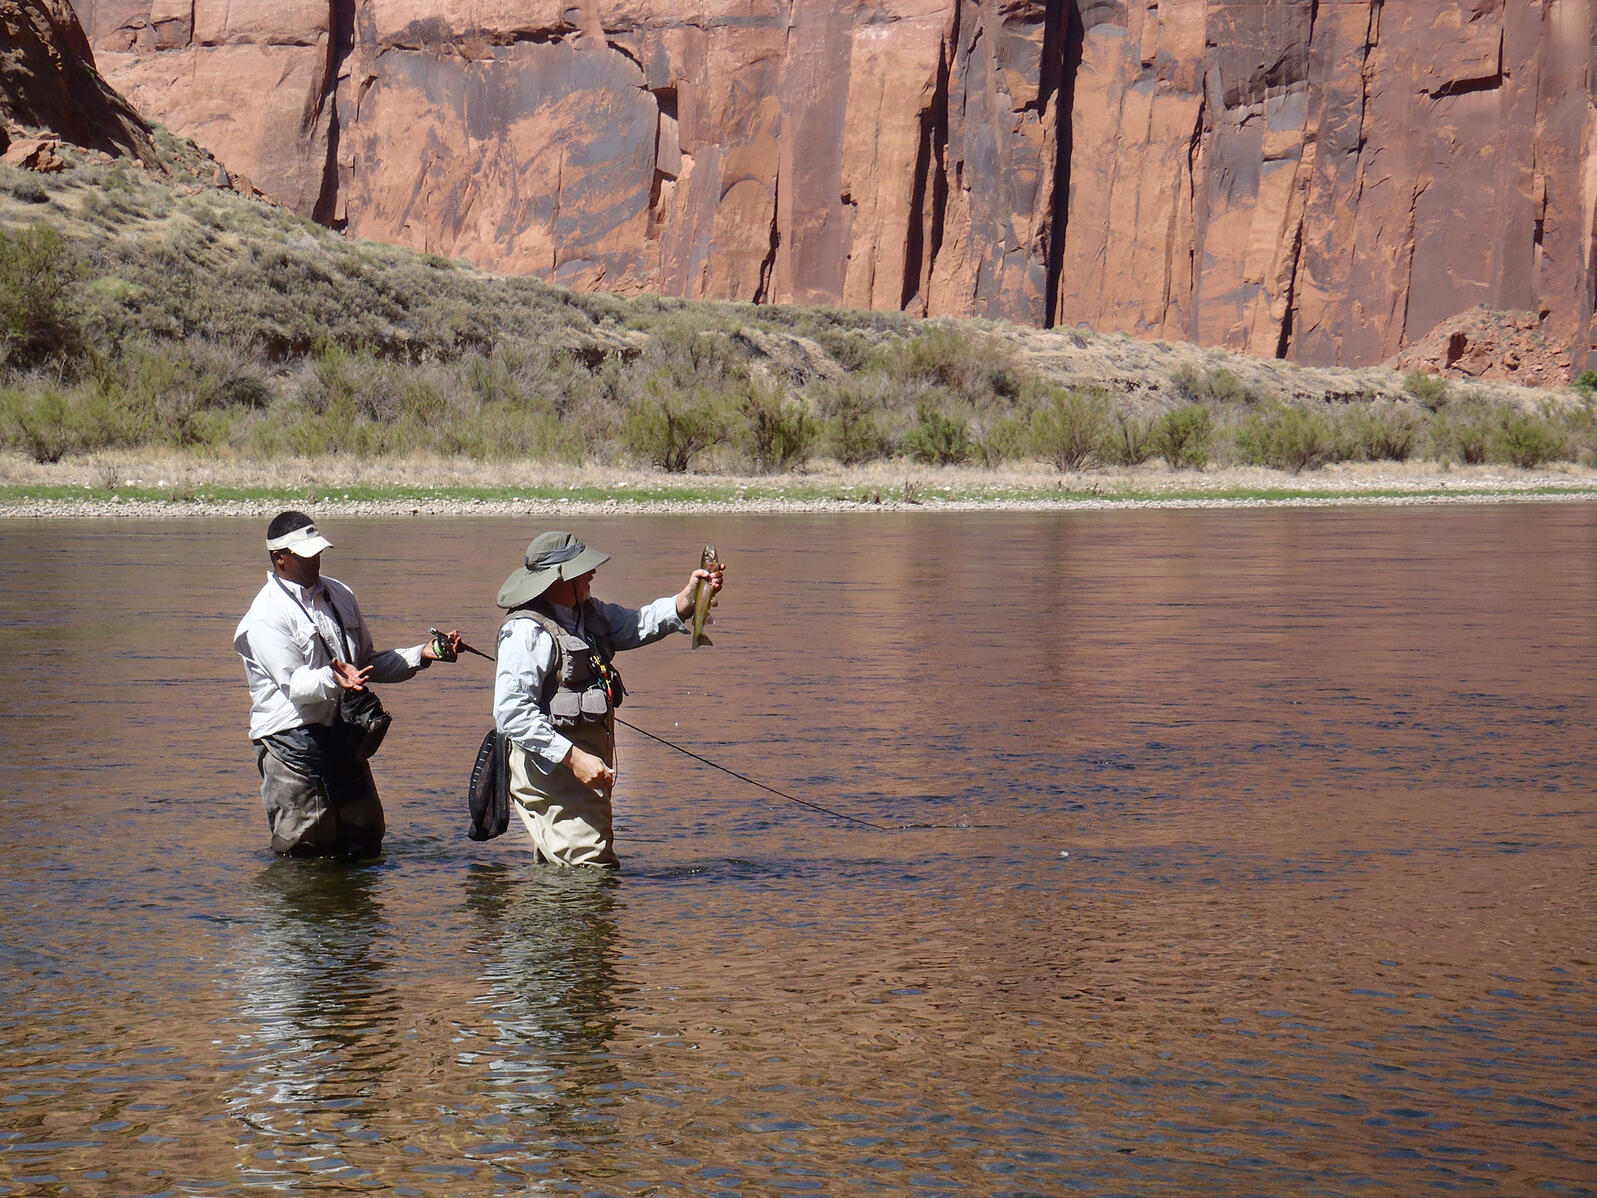 People fishing at Lee's Ferry, AZ. George Stephan/Flickr (CC BY 2.0)